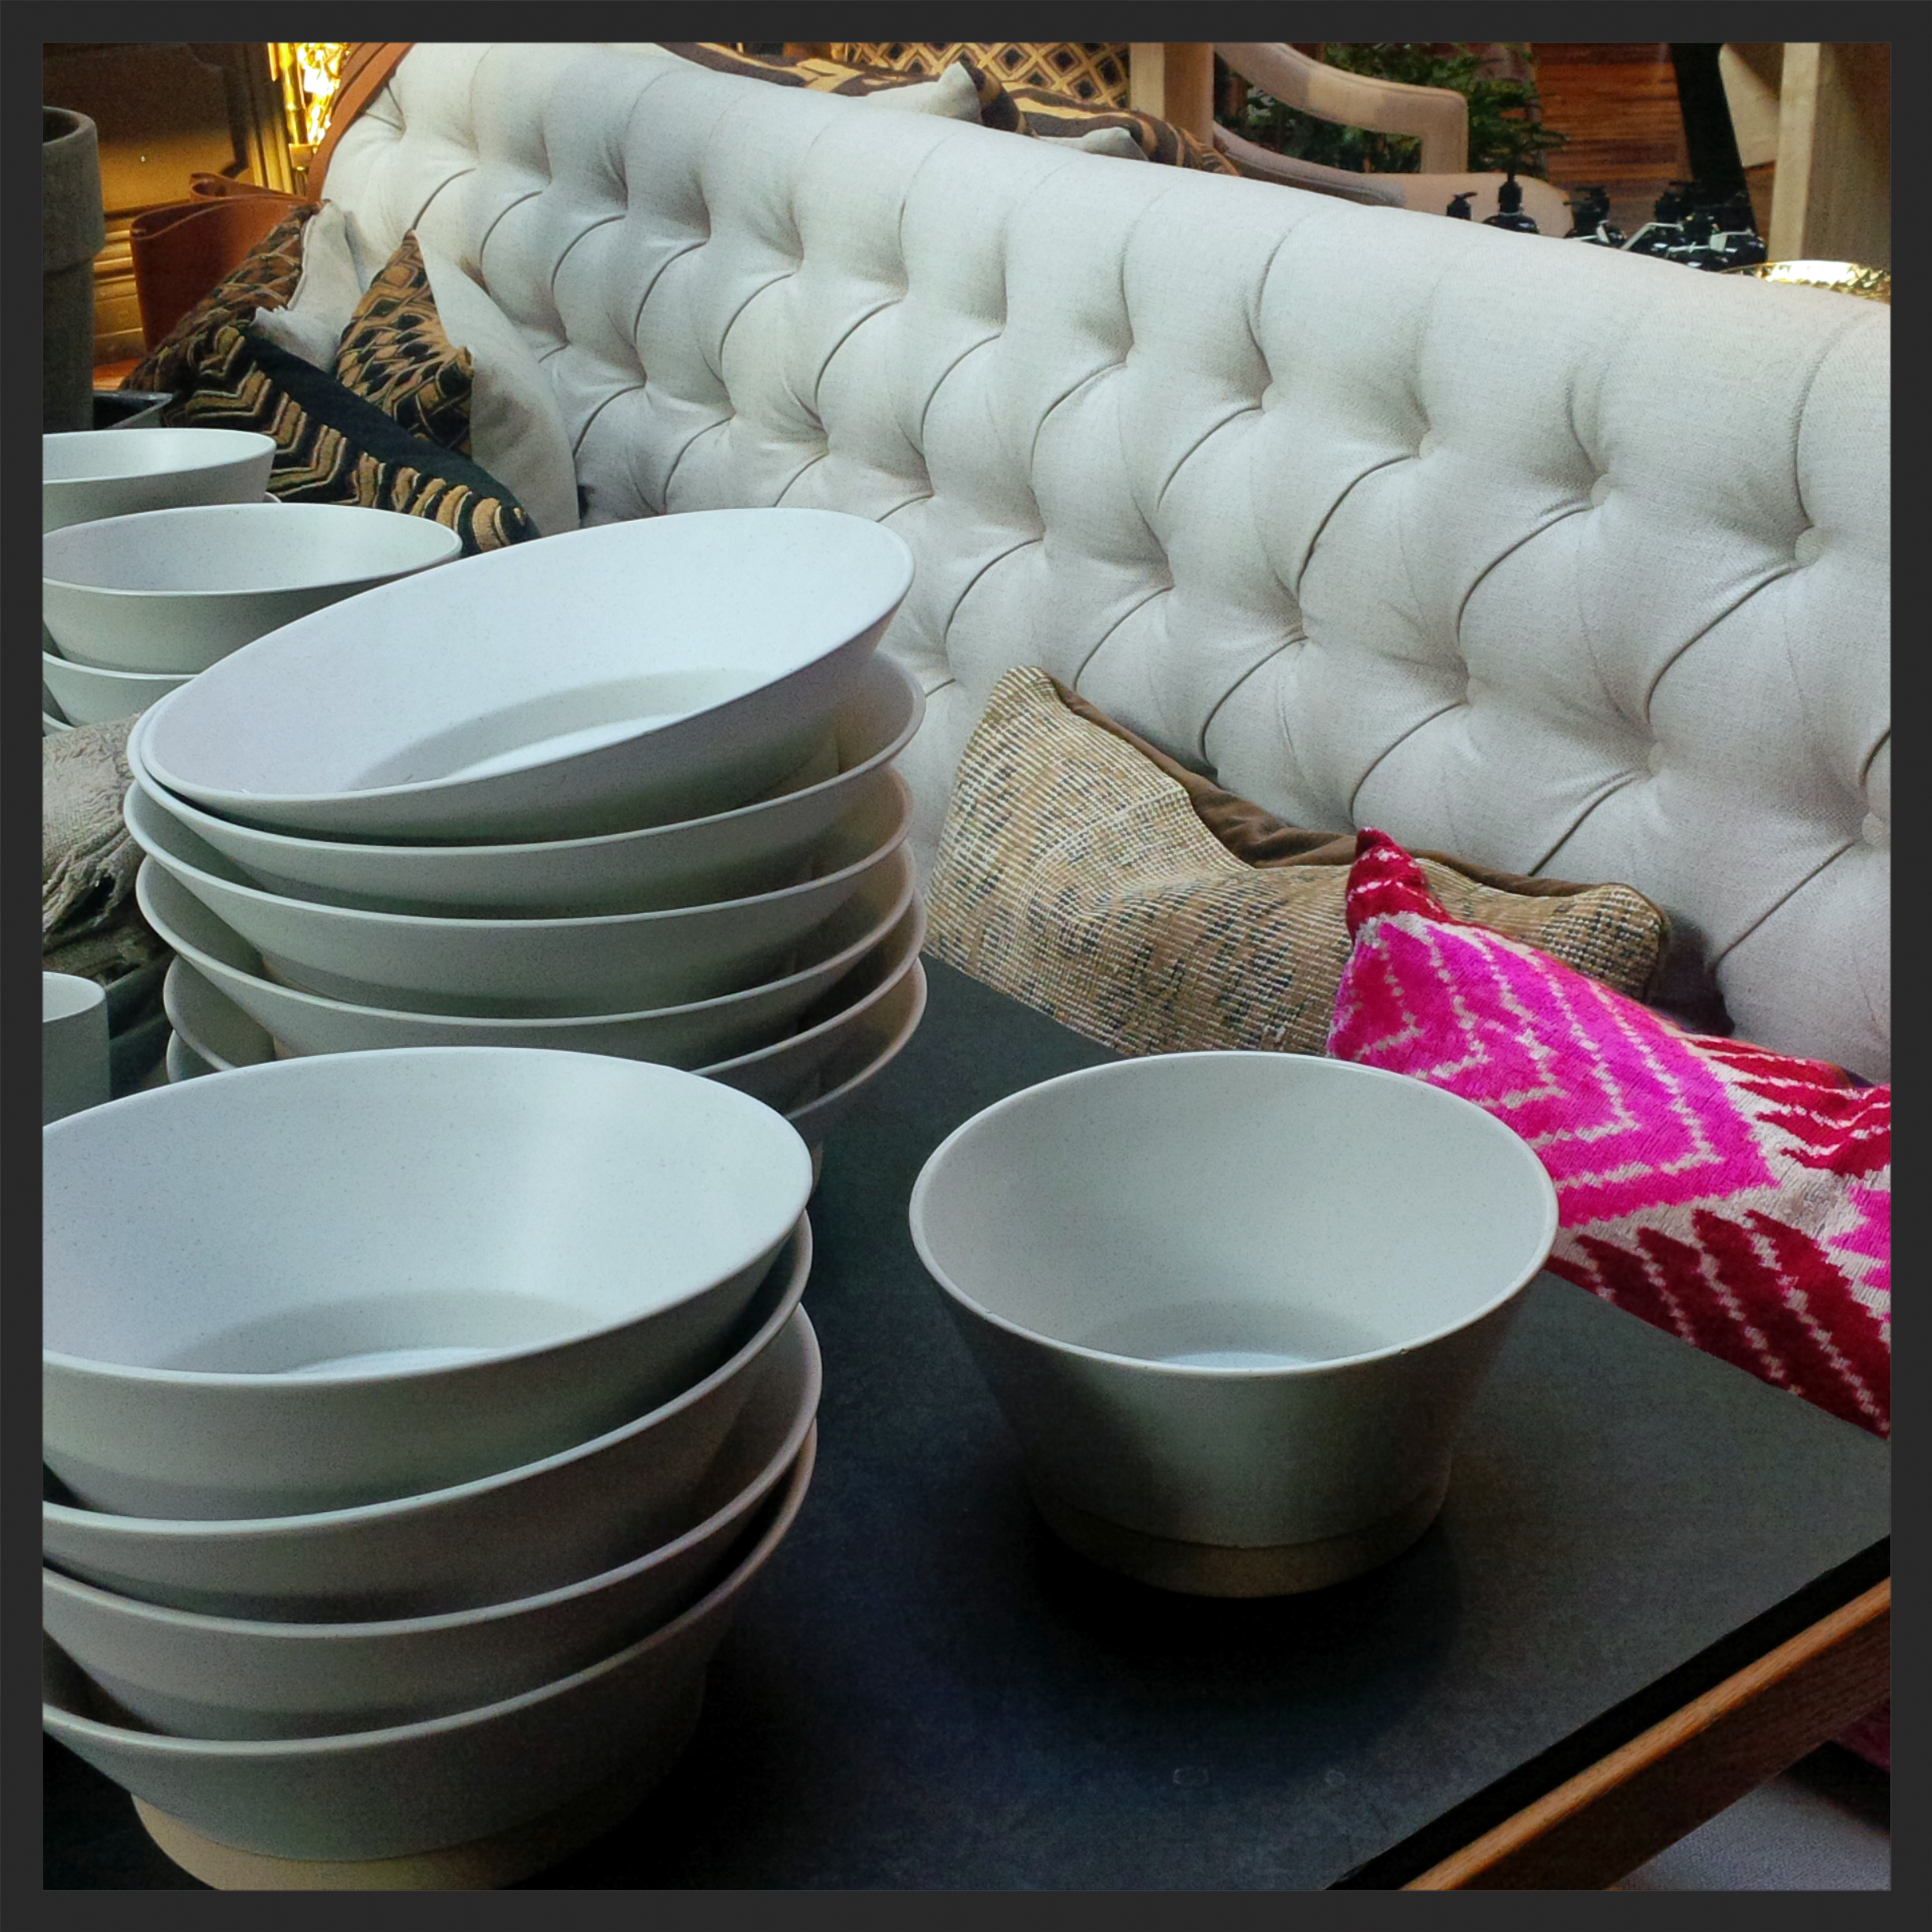 White dishware - a classic gift for any entertainer.